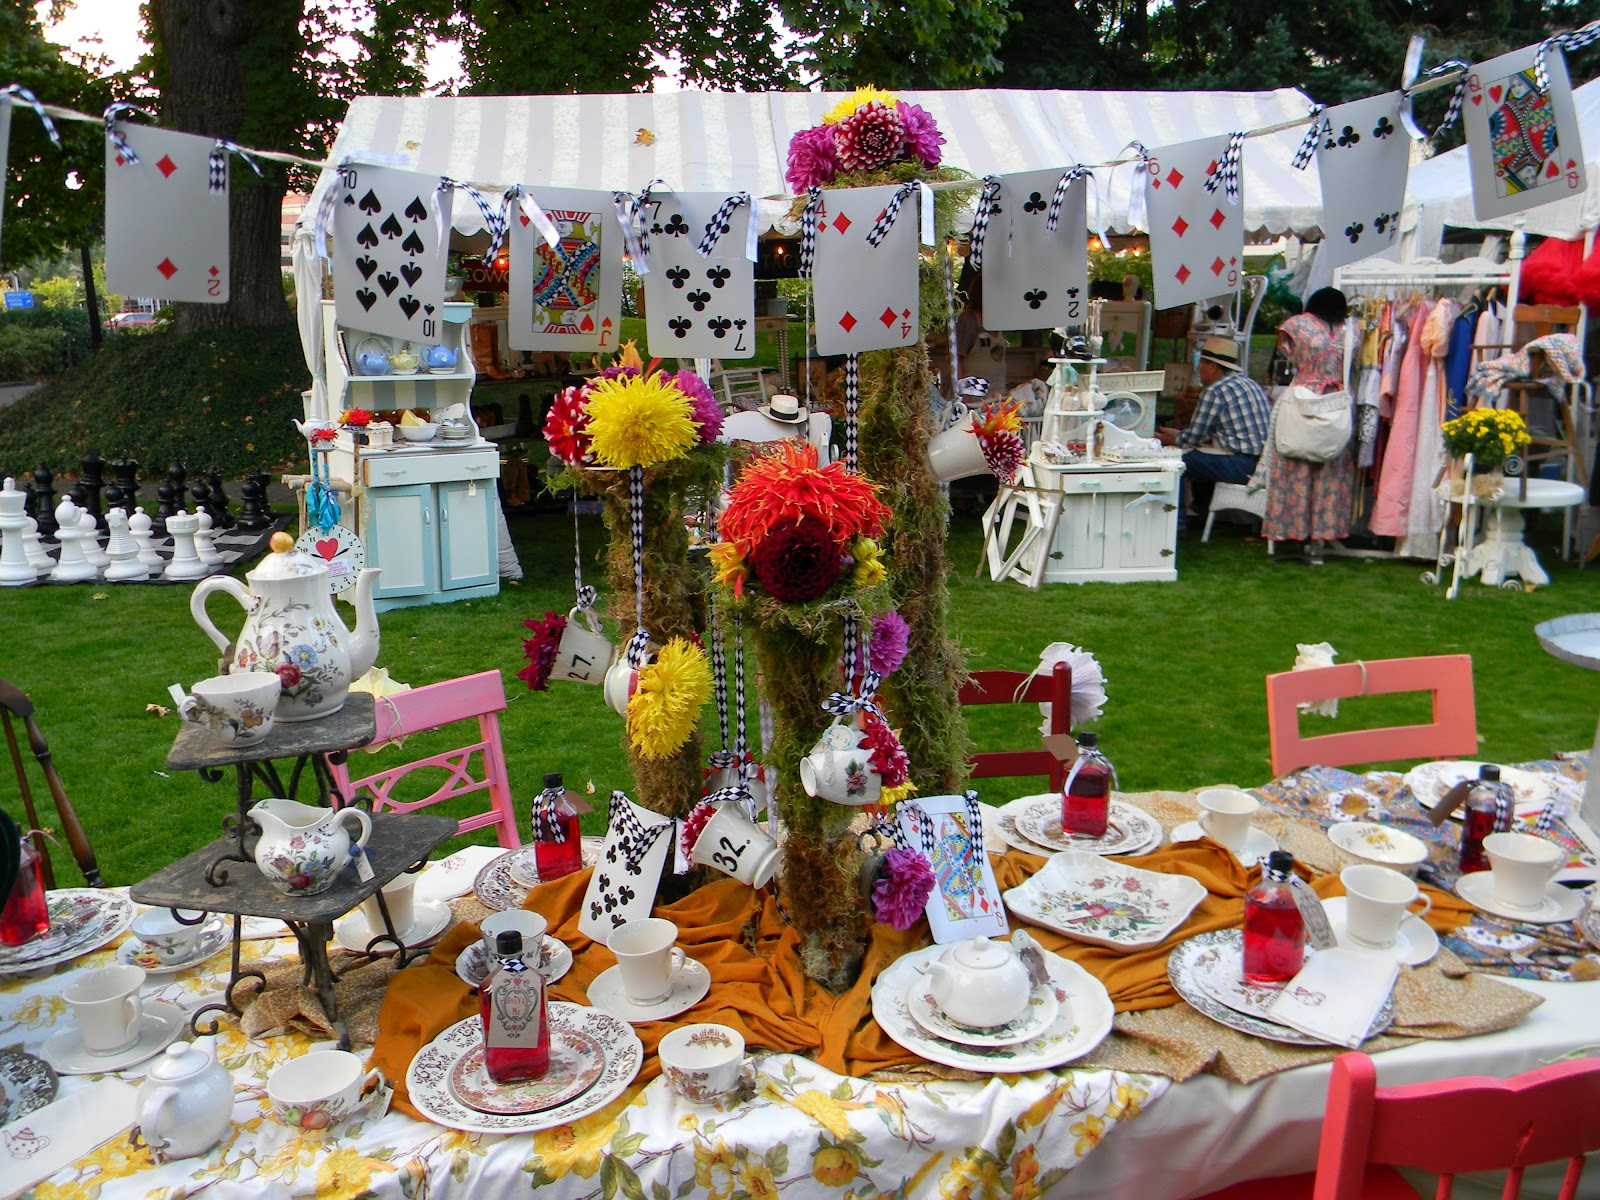 Mad Hatter Tea Party Decoration Ideas  Mere Mortal Design My House as a Laboratory Mad Hatter